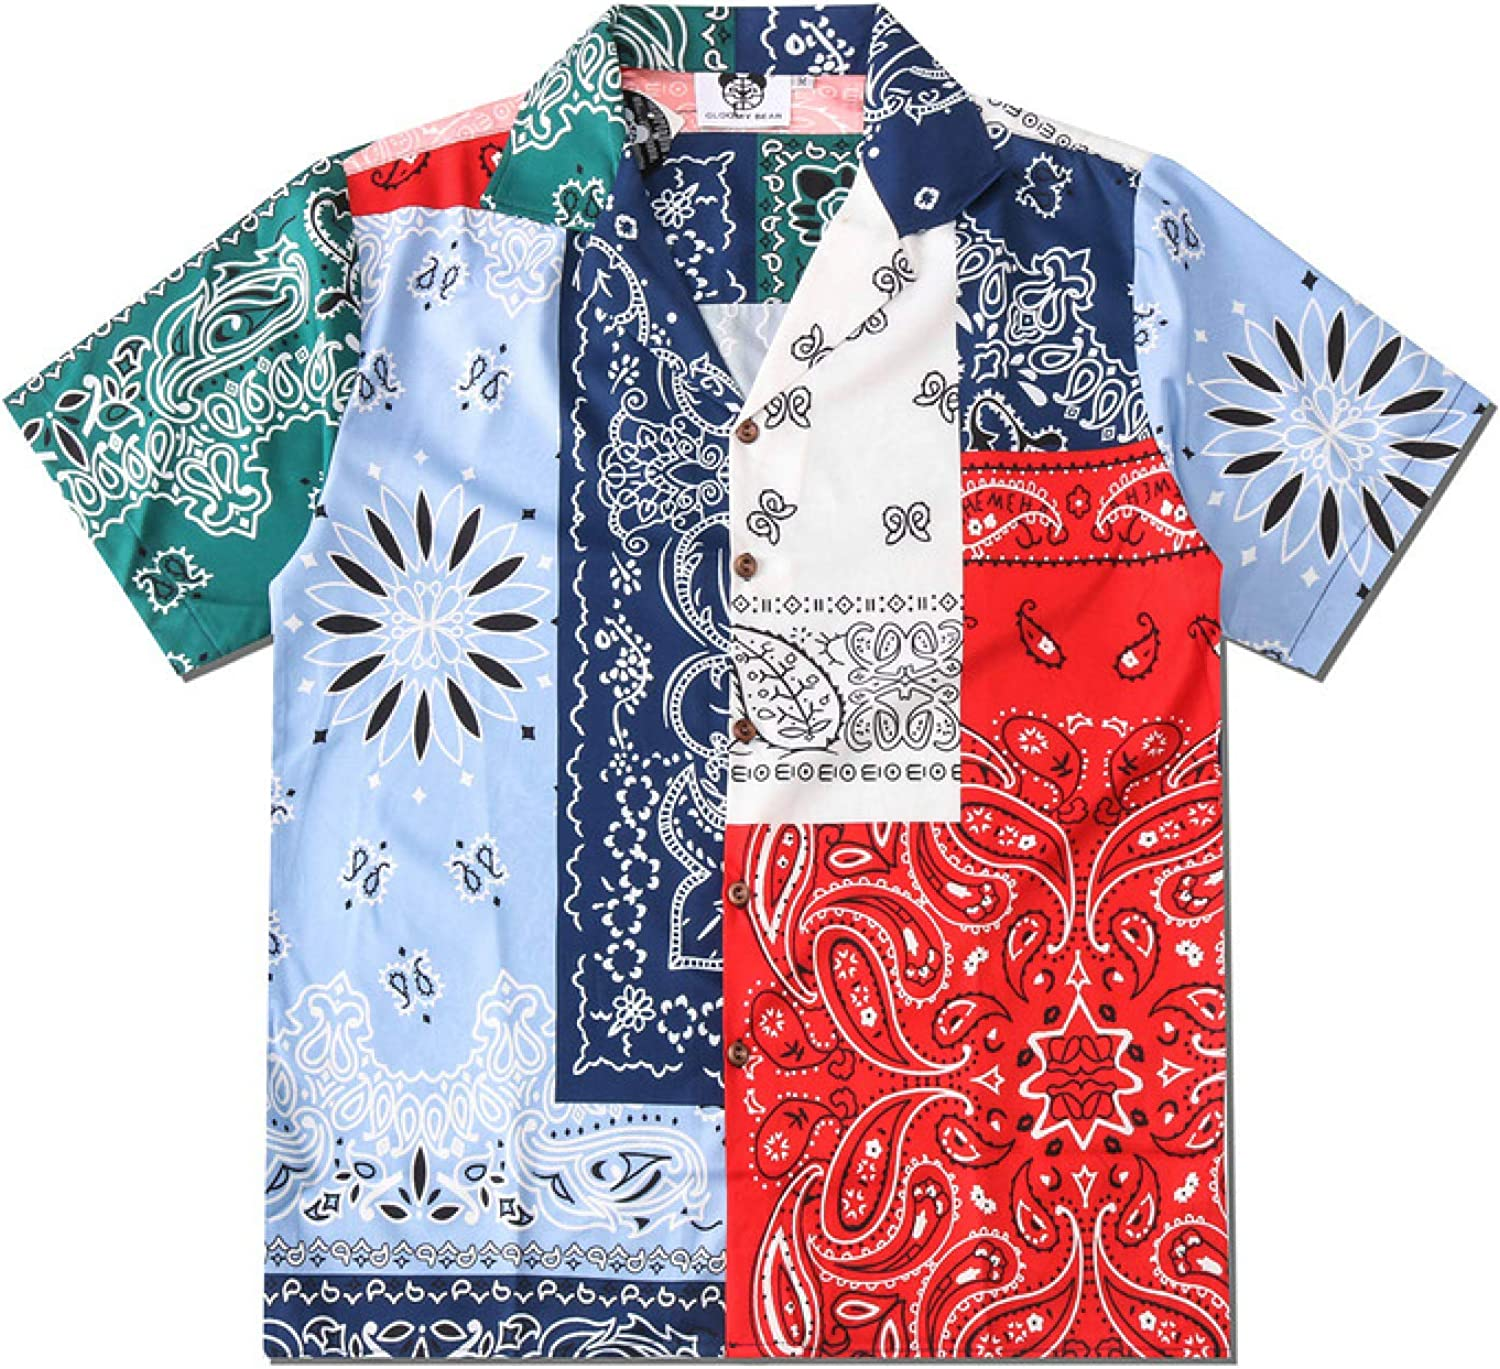 Quantity limited Corumly Men's Short-Sleeved Shirt Max 74% OFF Summer Loose Prin Style Ethnic